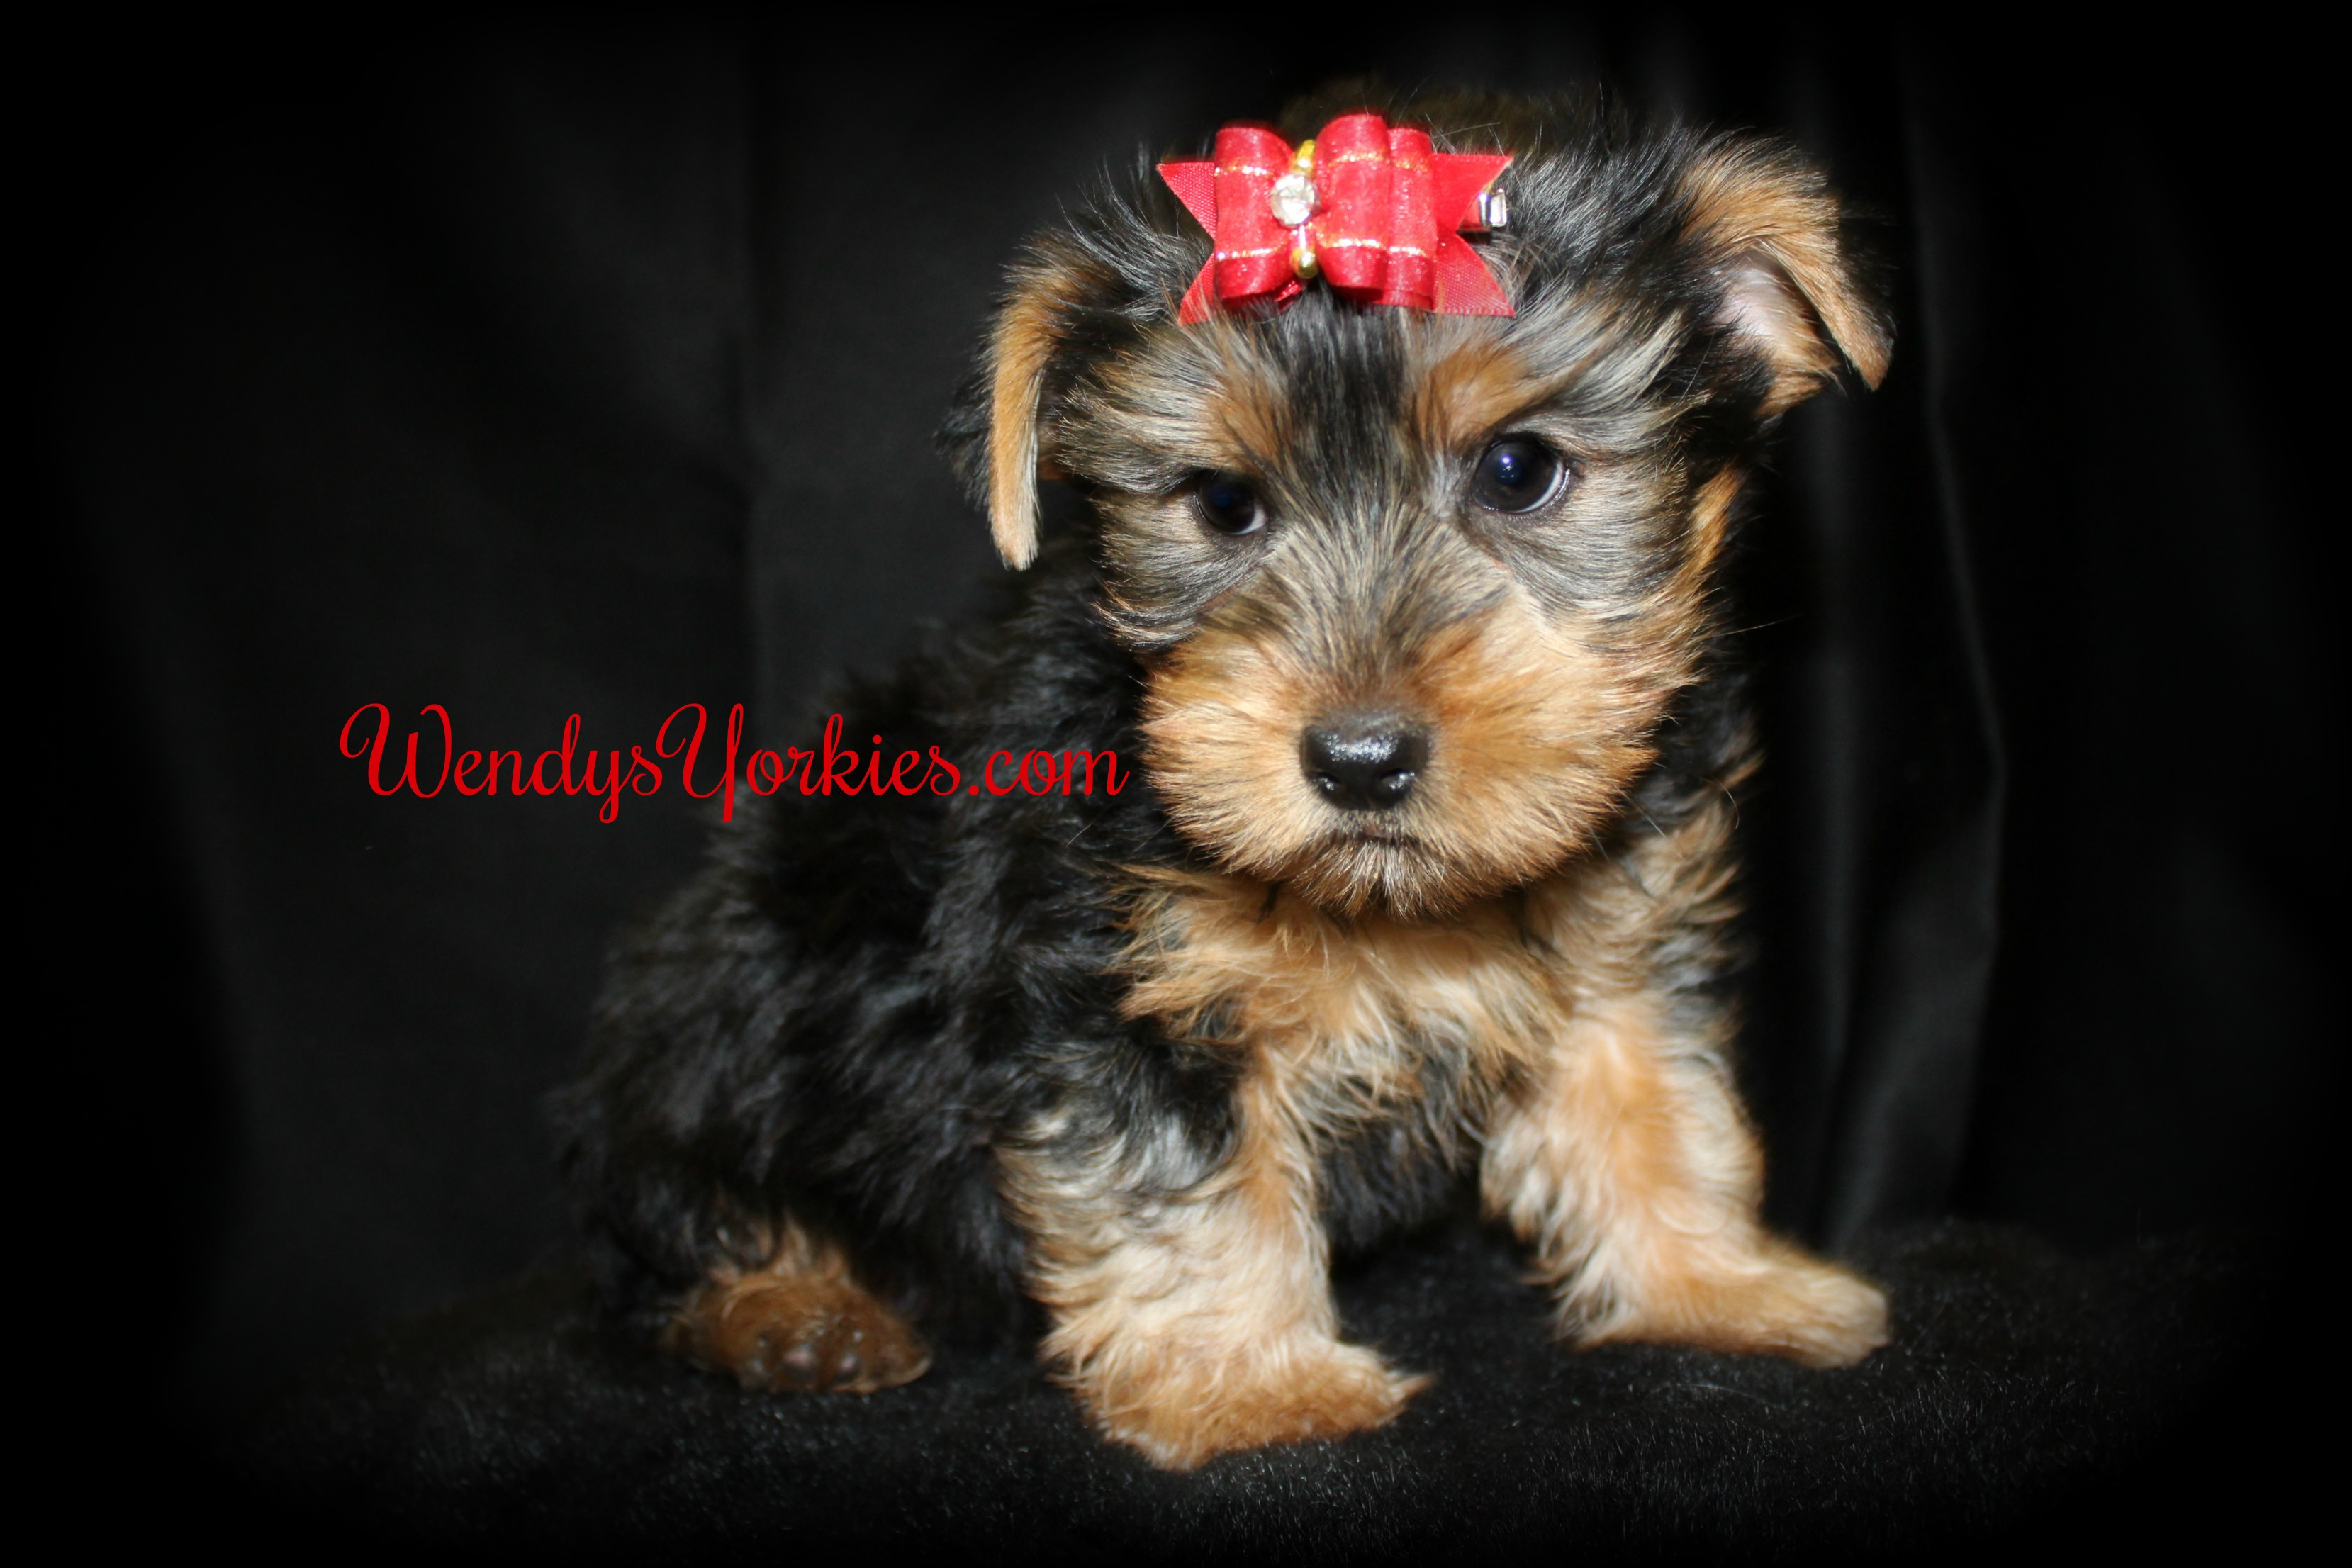 Yorkie puppy for sale in Texas, WendysYorkies.com, Brittney m1